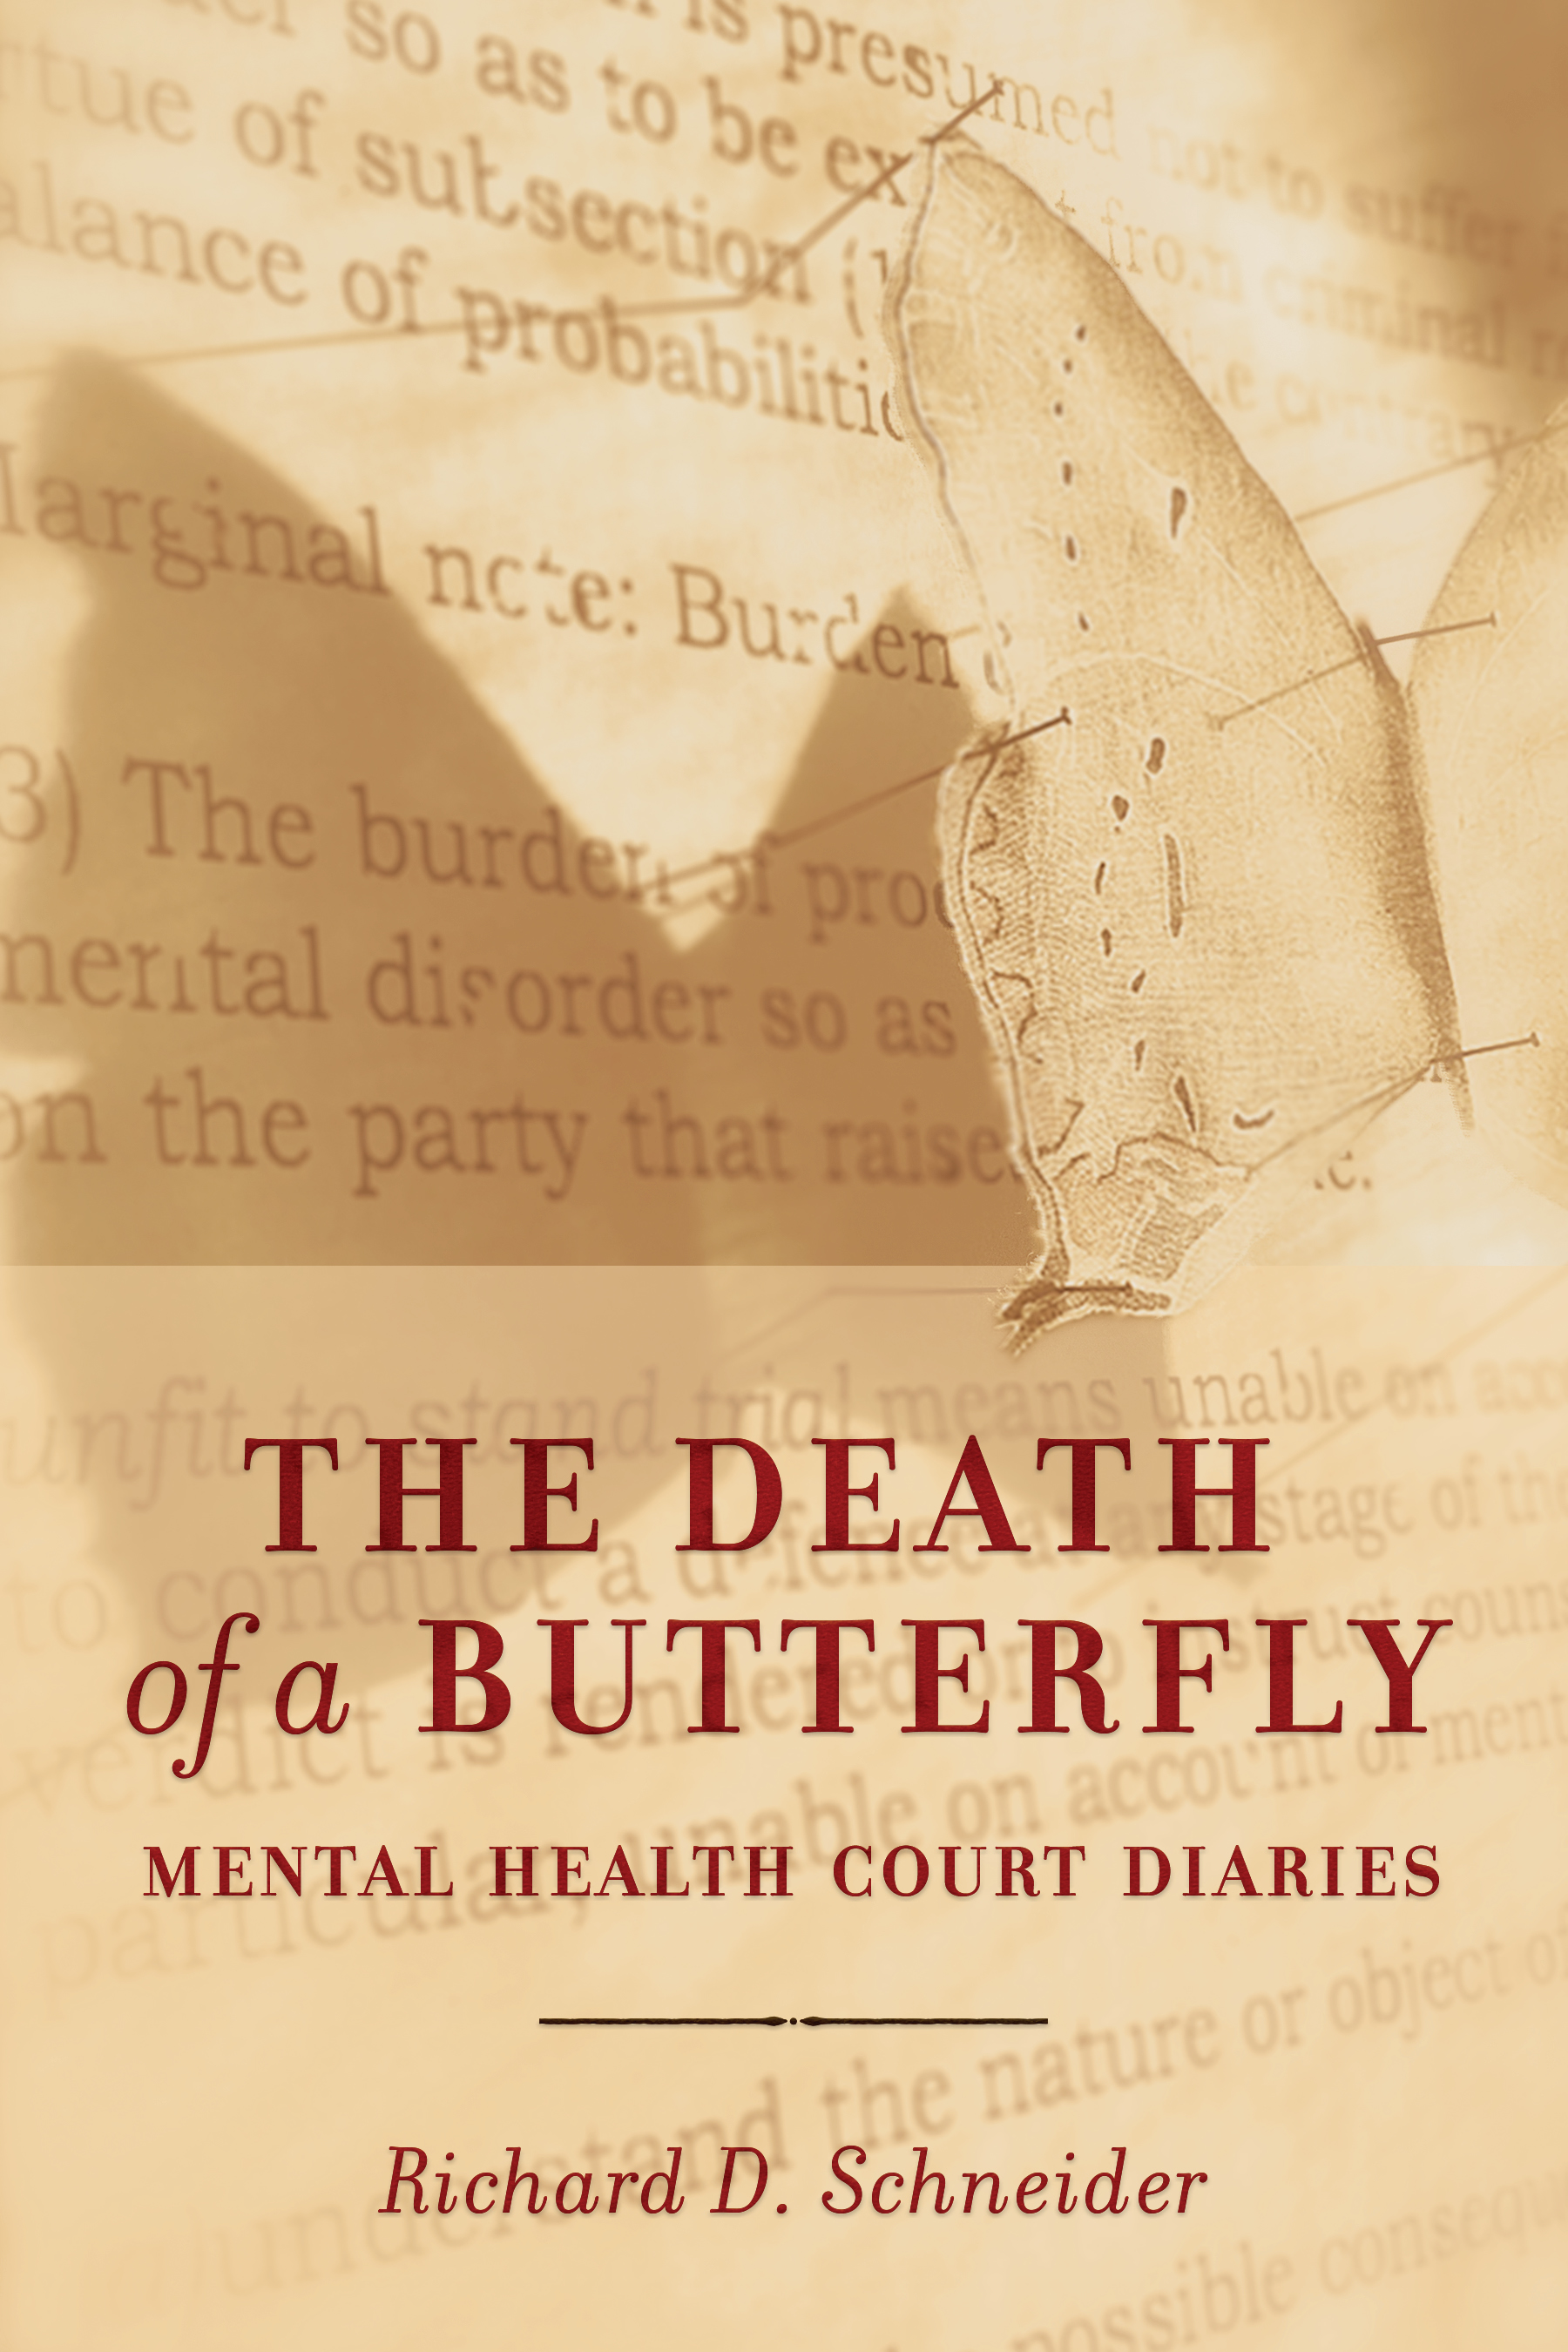 Book cover for The Death of a Butterfly by Richard Schneider, showing an intricate paper butterfly pinned to legal text.